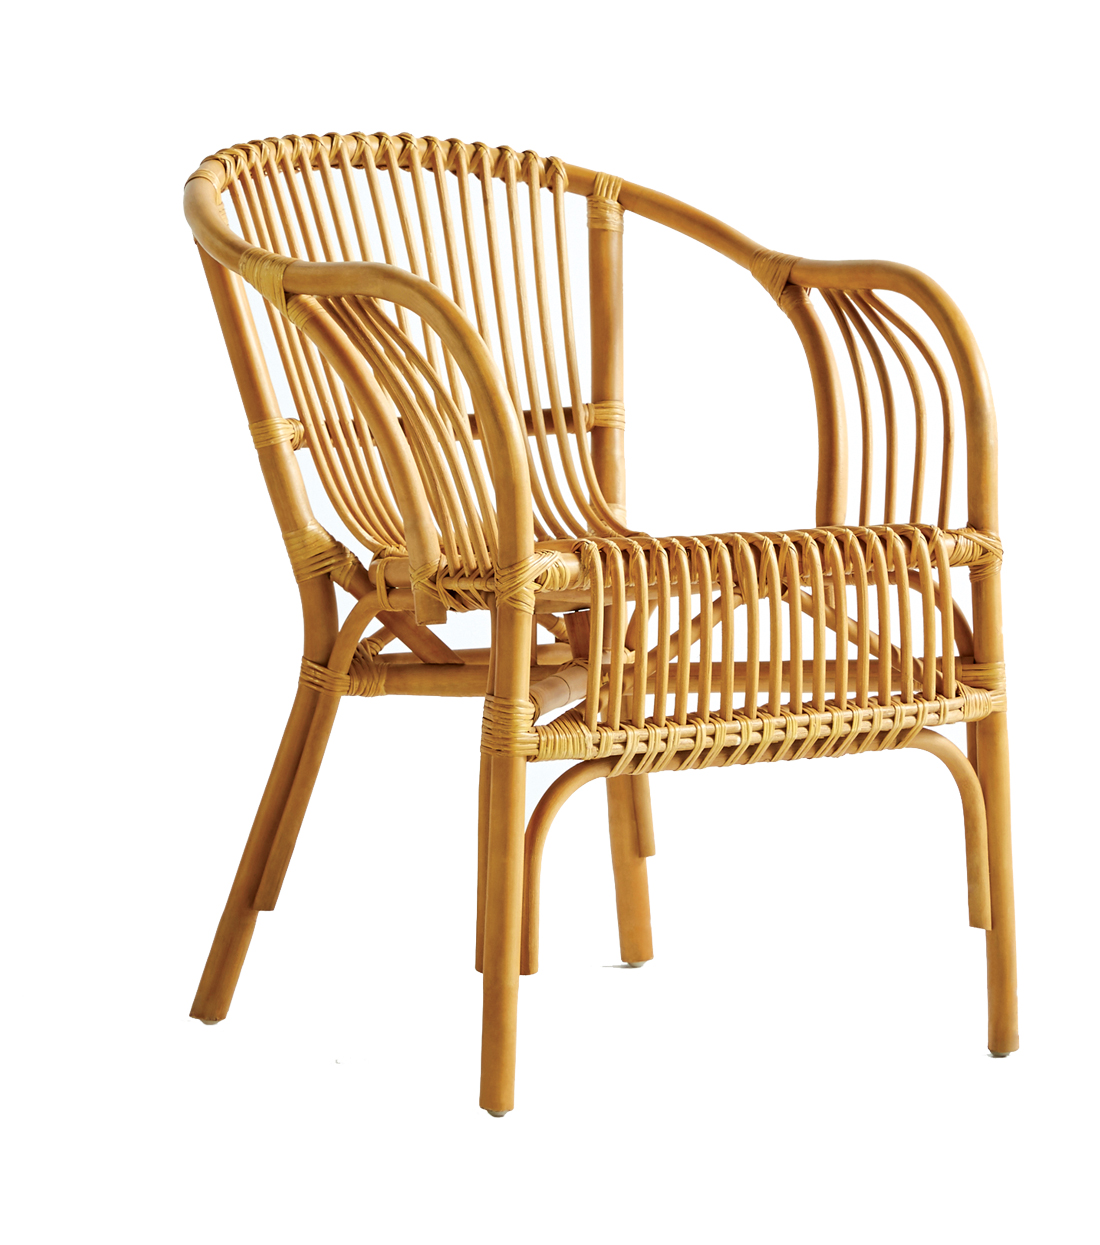 Rattan chair with arms.